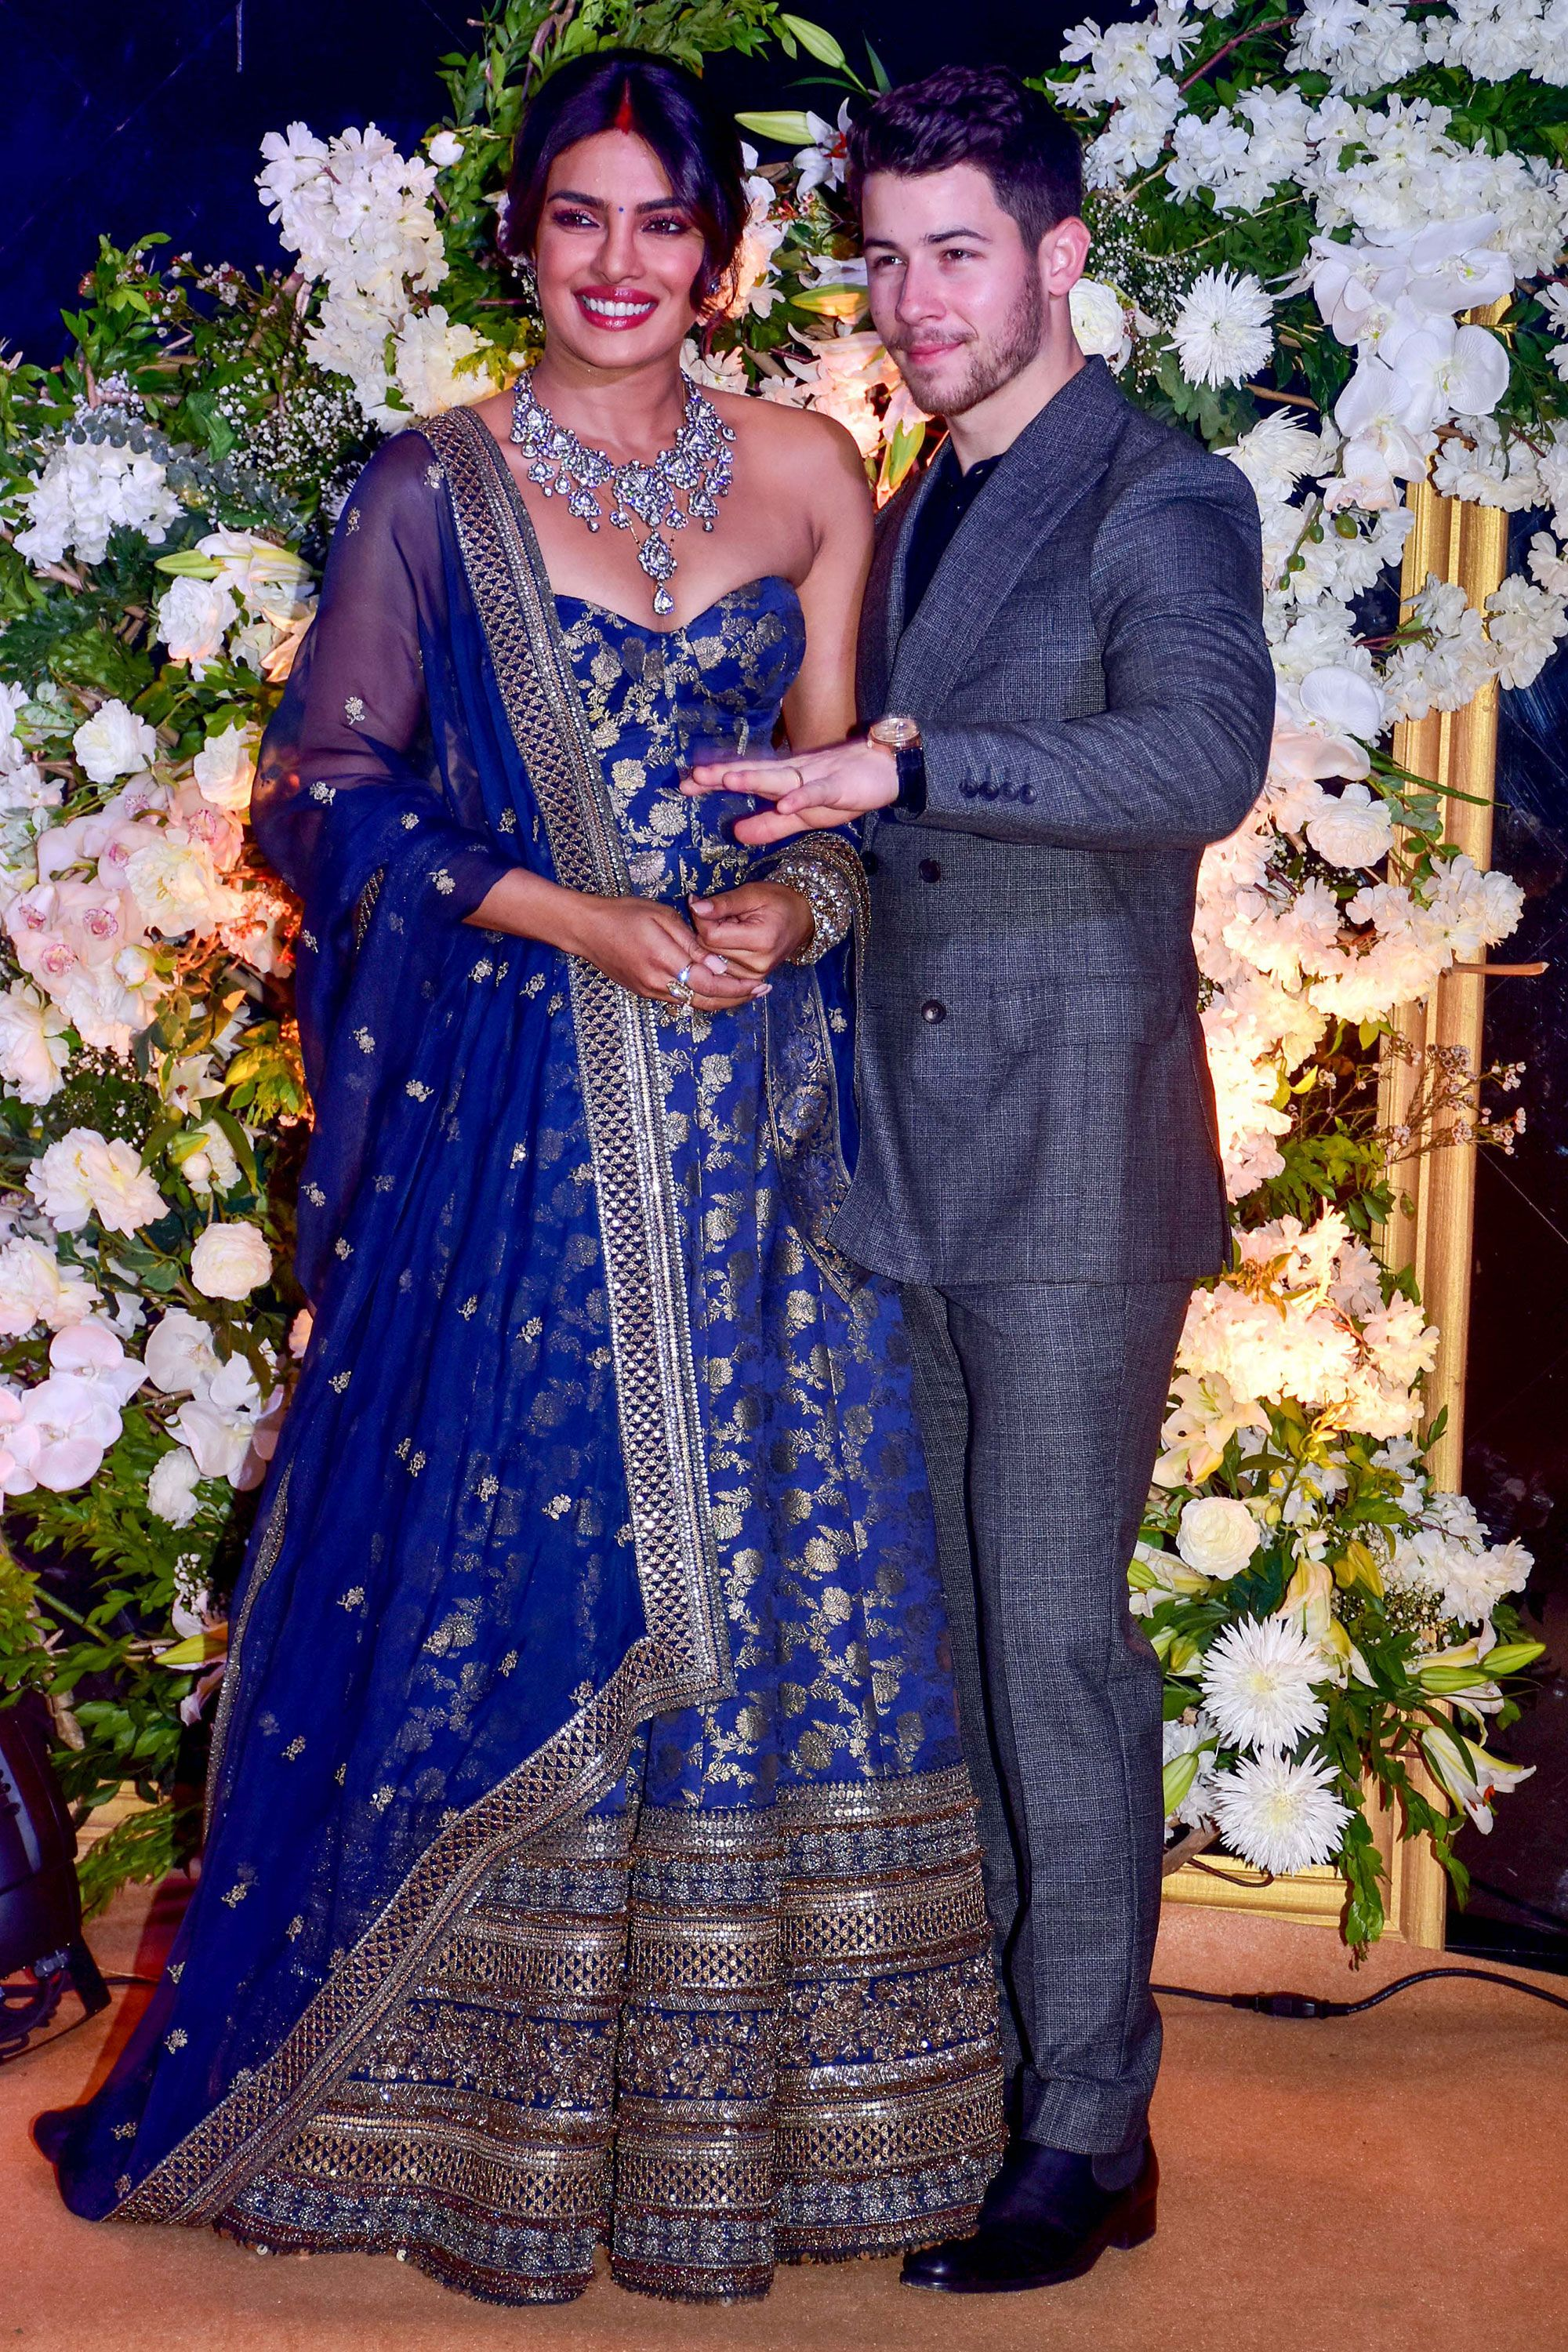 c86533c6ba Every outfit Priyanka Chopra wore during her wedding celebrations